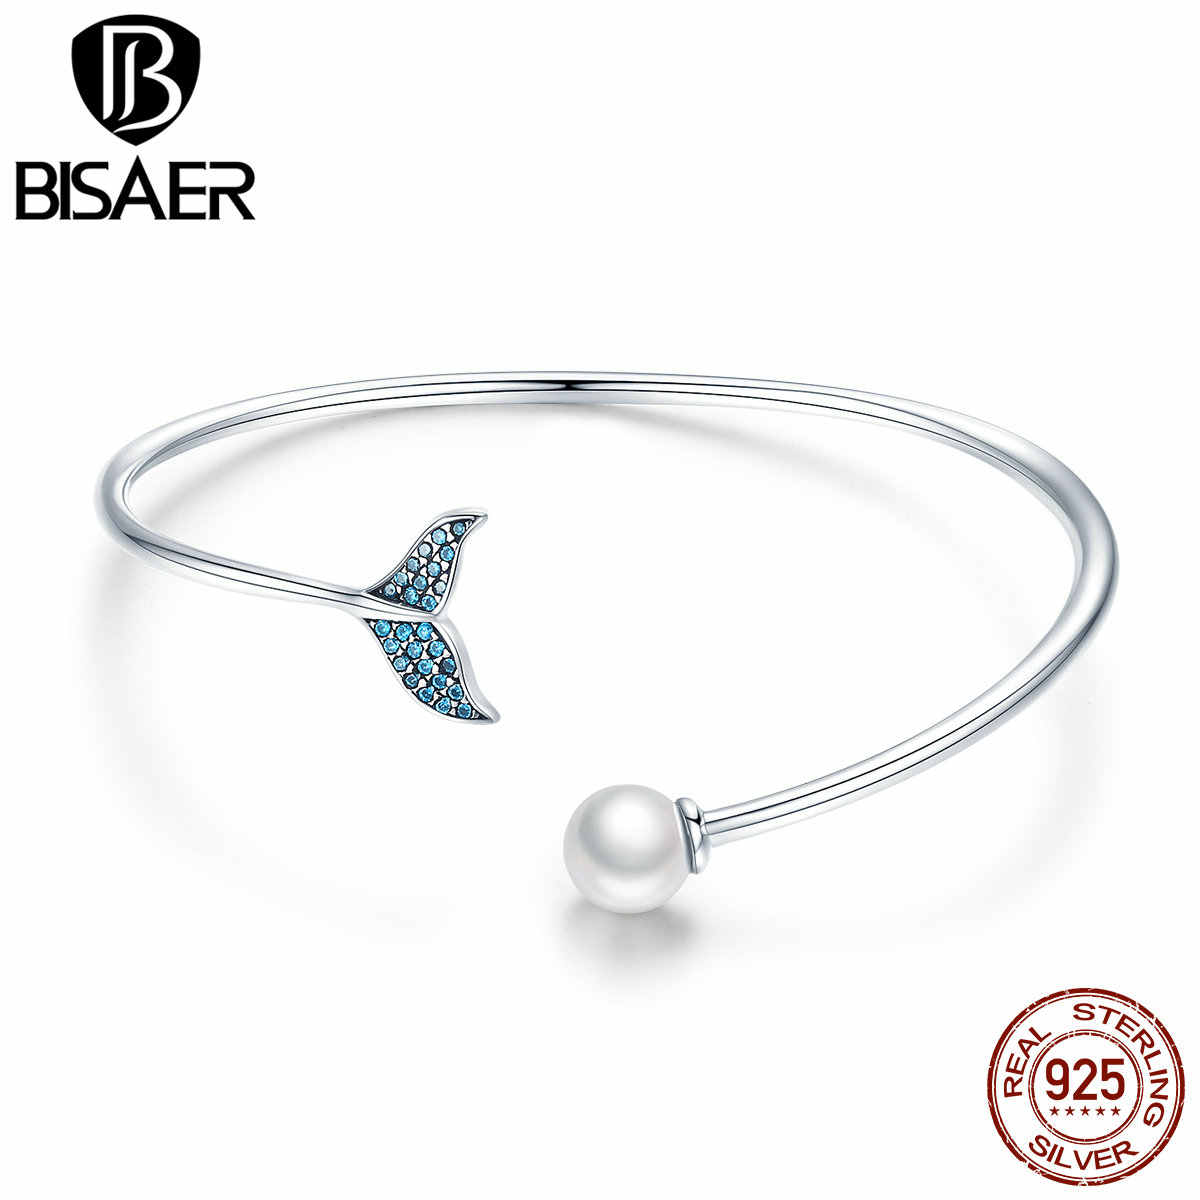 BISAER 925 Sterling Silver Blue CZ Mermaid Fishtail and Pearl Bangle Bracelet for Girl Fashion Jewelry 2019 Mode Gifts GXB123